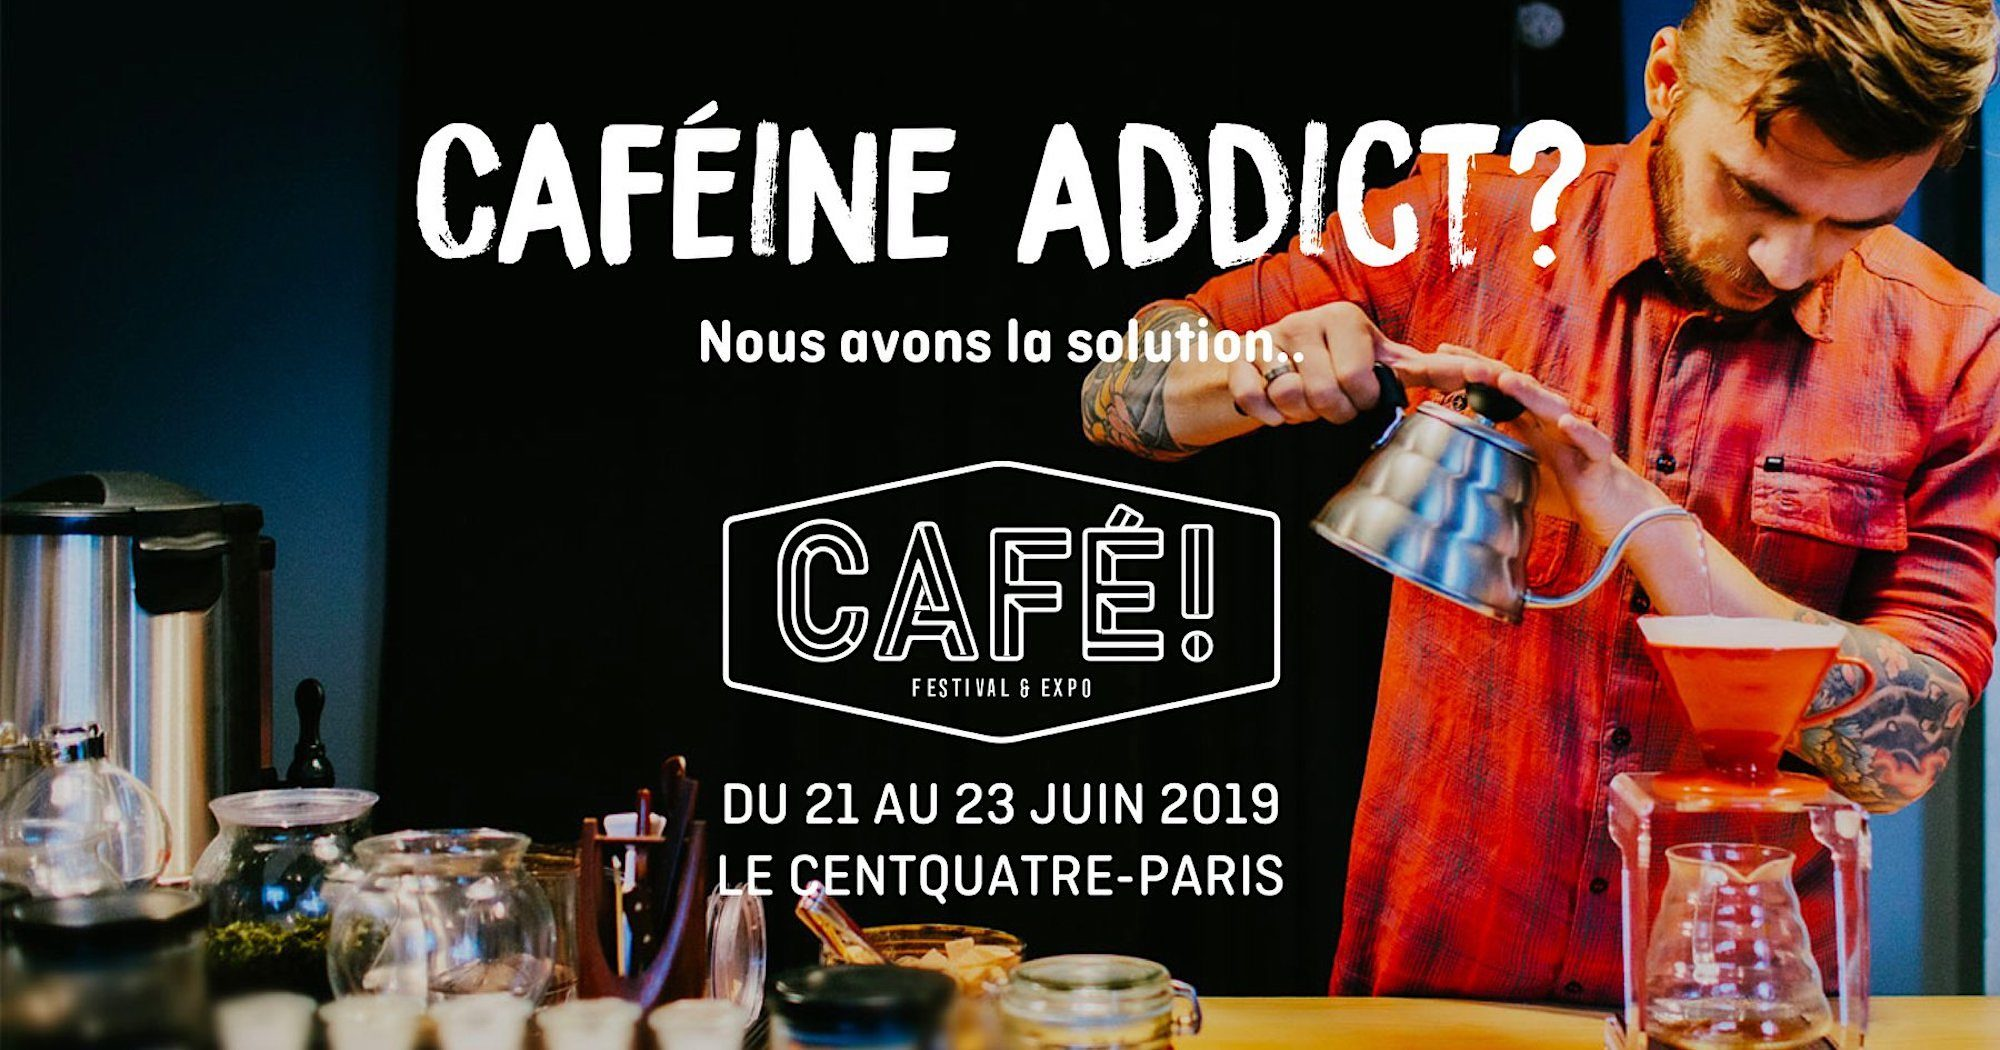 The Coffee festival in Paris this June is one of the top events this month for coffee-lovers.